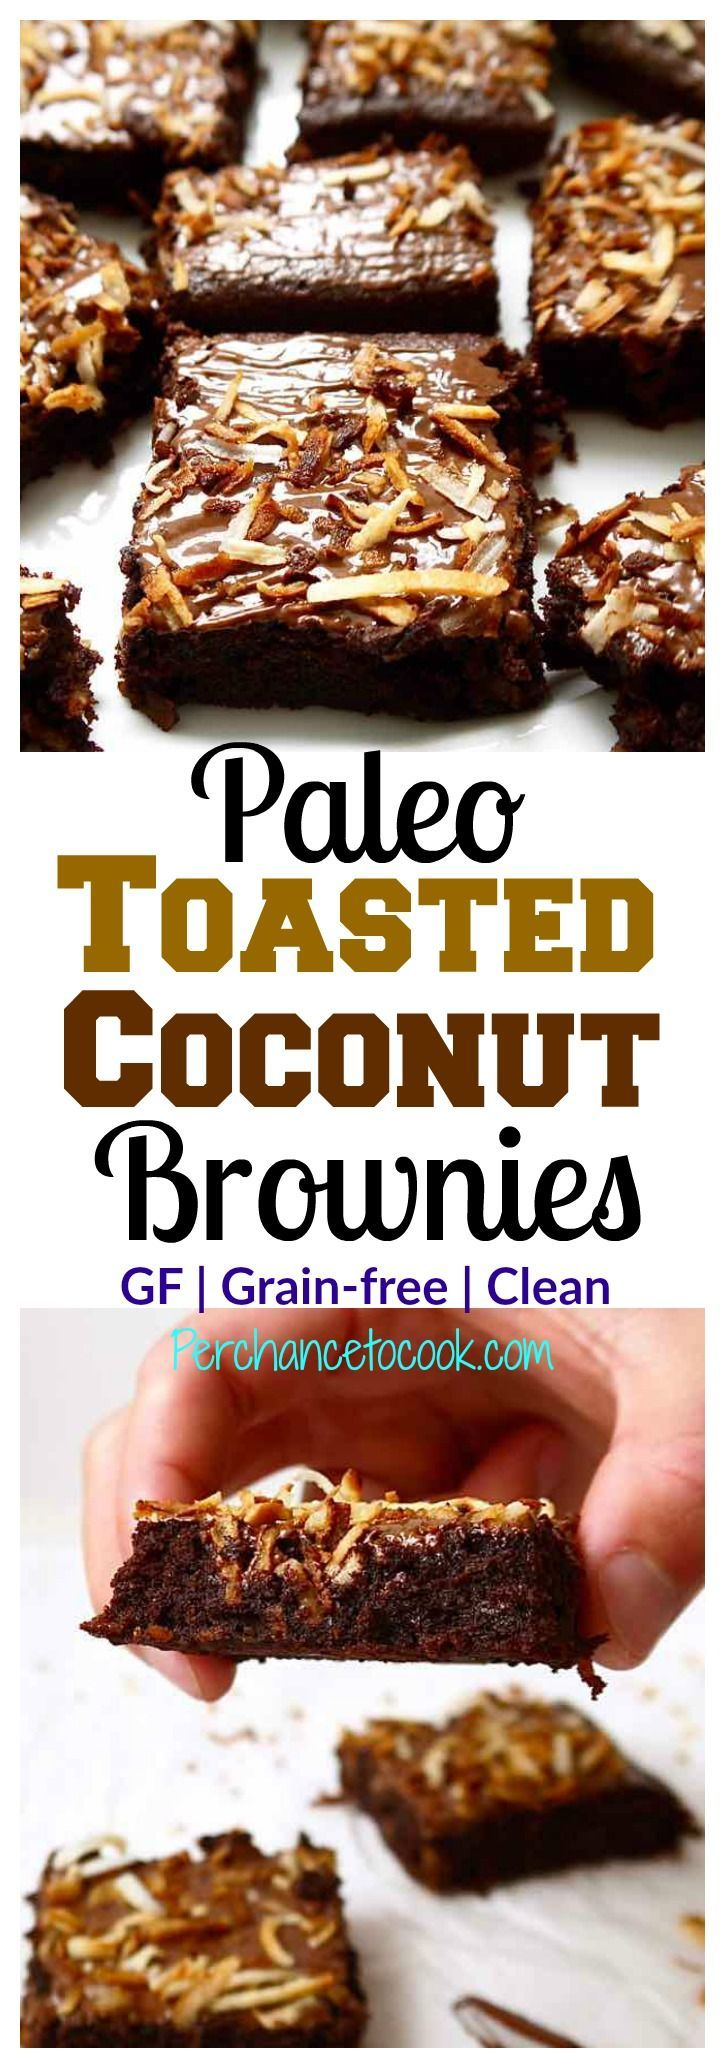 Paleo Toasted Coconut Brownies (GF) ~ Made with almond flour, cocoa powder, shredded coconut, olive oil, maple syrup, eggs, and chocolate chips. These healthy brownies pack a flavor punch! | Perchance to Cook, www.perchancetocook.com